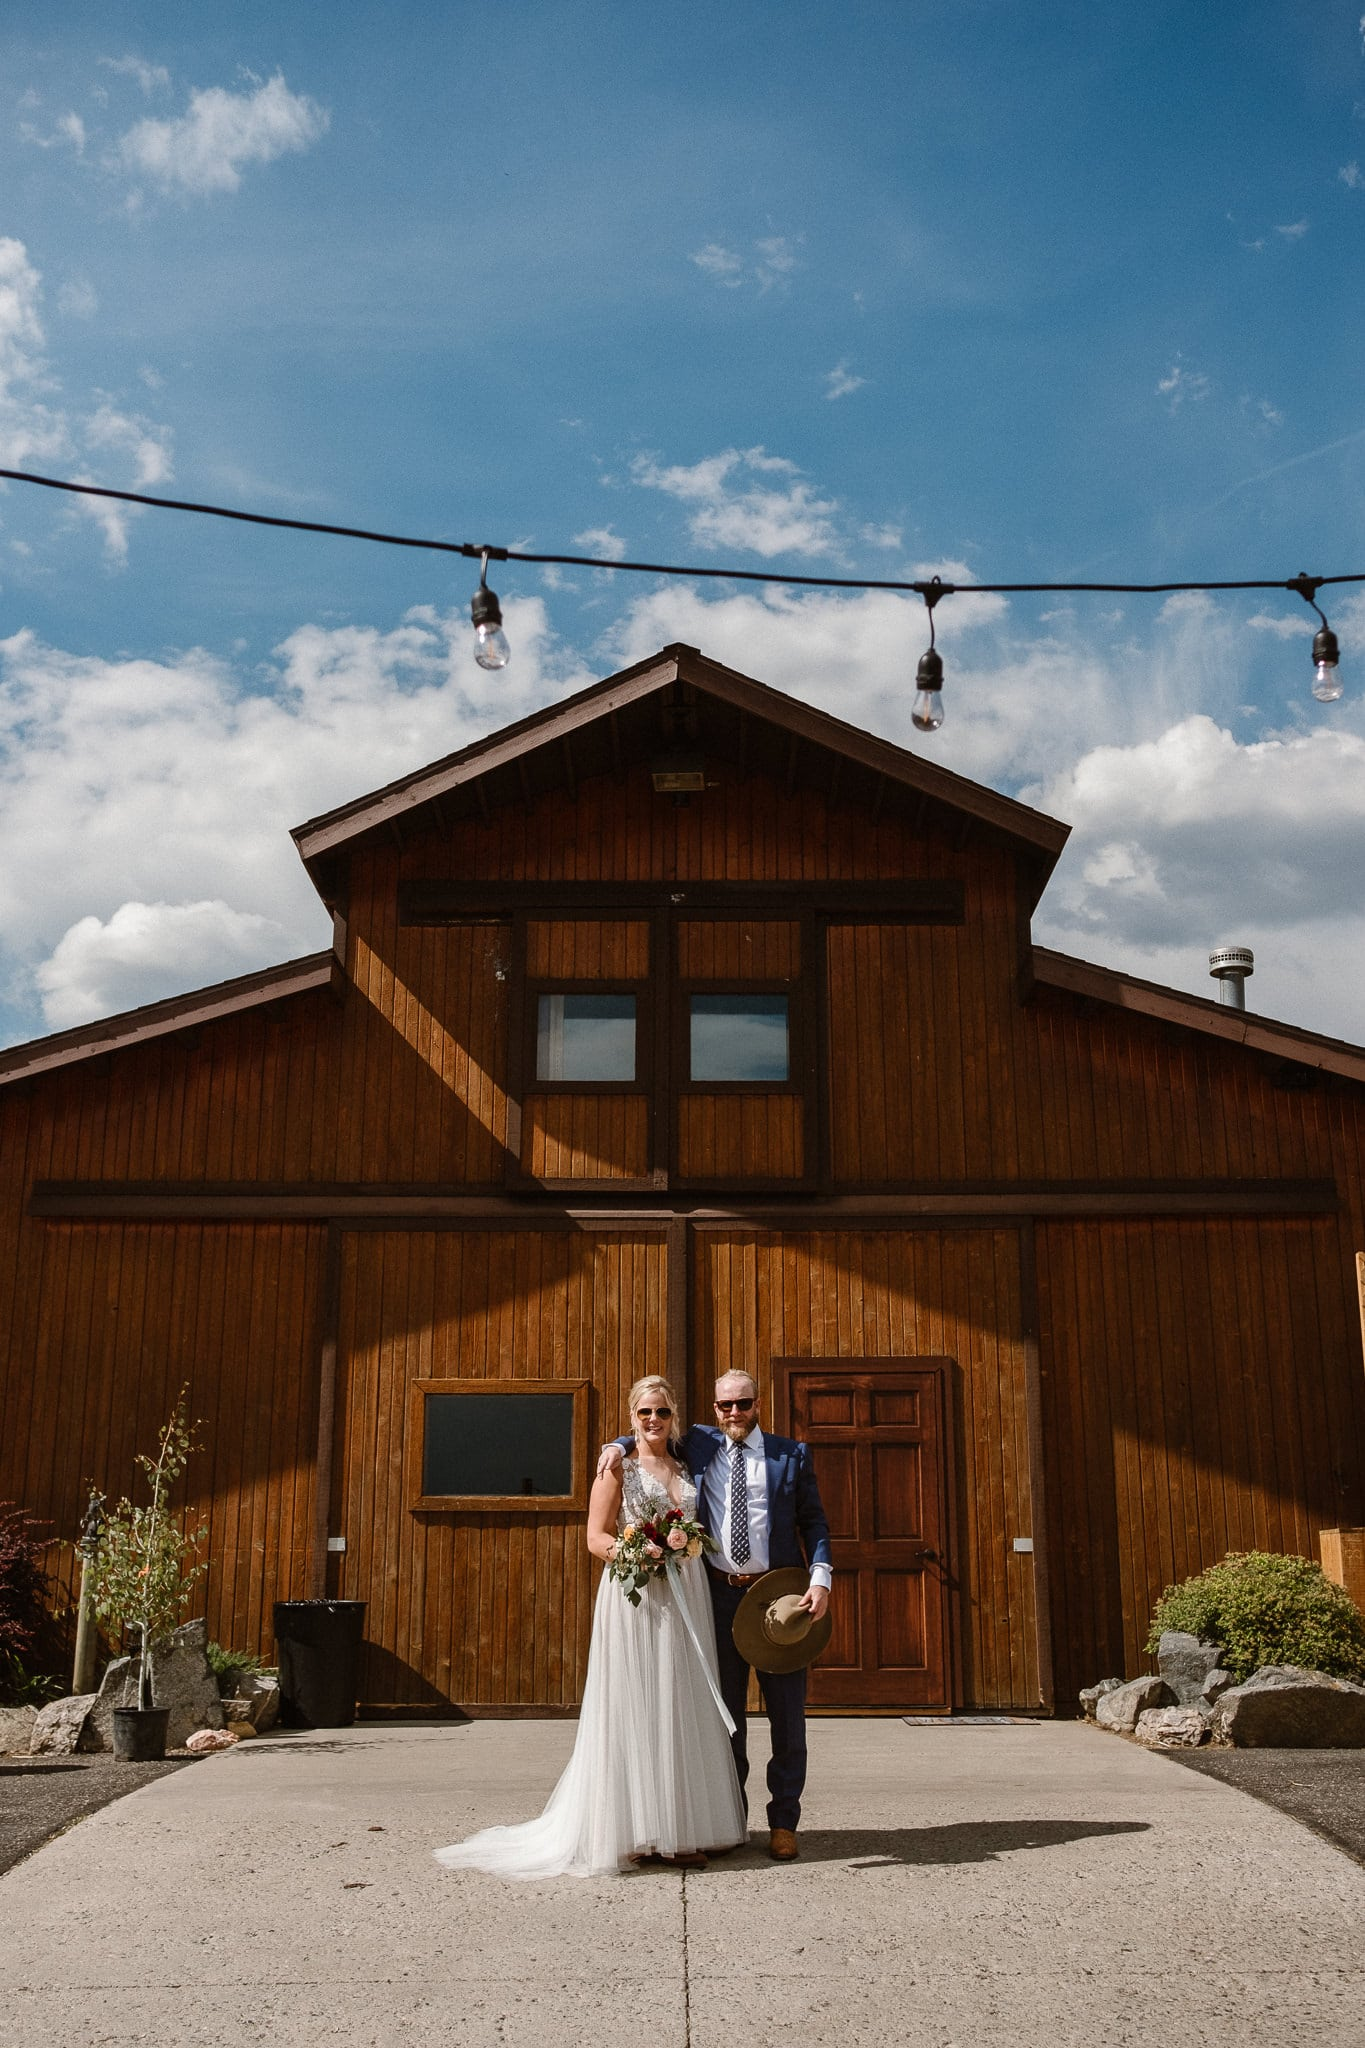 Steamboat Springs wedding photographer, La Joya Dulce wedding, Colorado ranch wedding venues, bride and groom portrait by barn wedding venue, Colorado mountain wedding venues